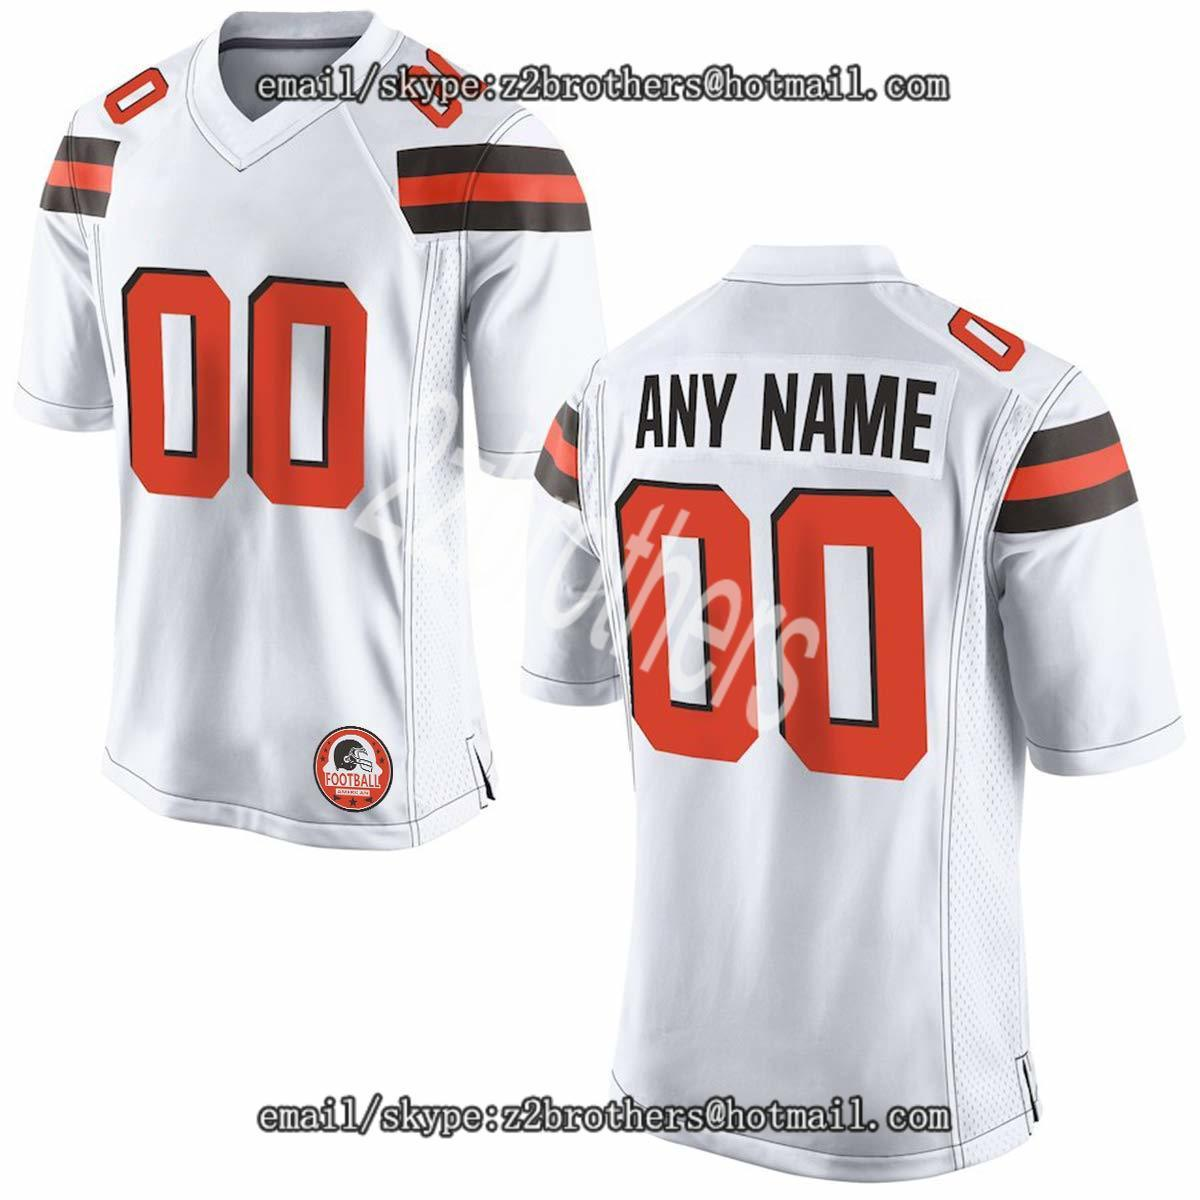 c97da929d Buy football jersey number and get free shipping on AliExpress.com